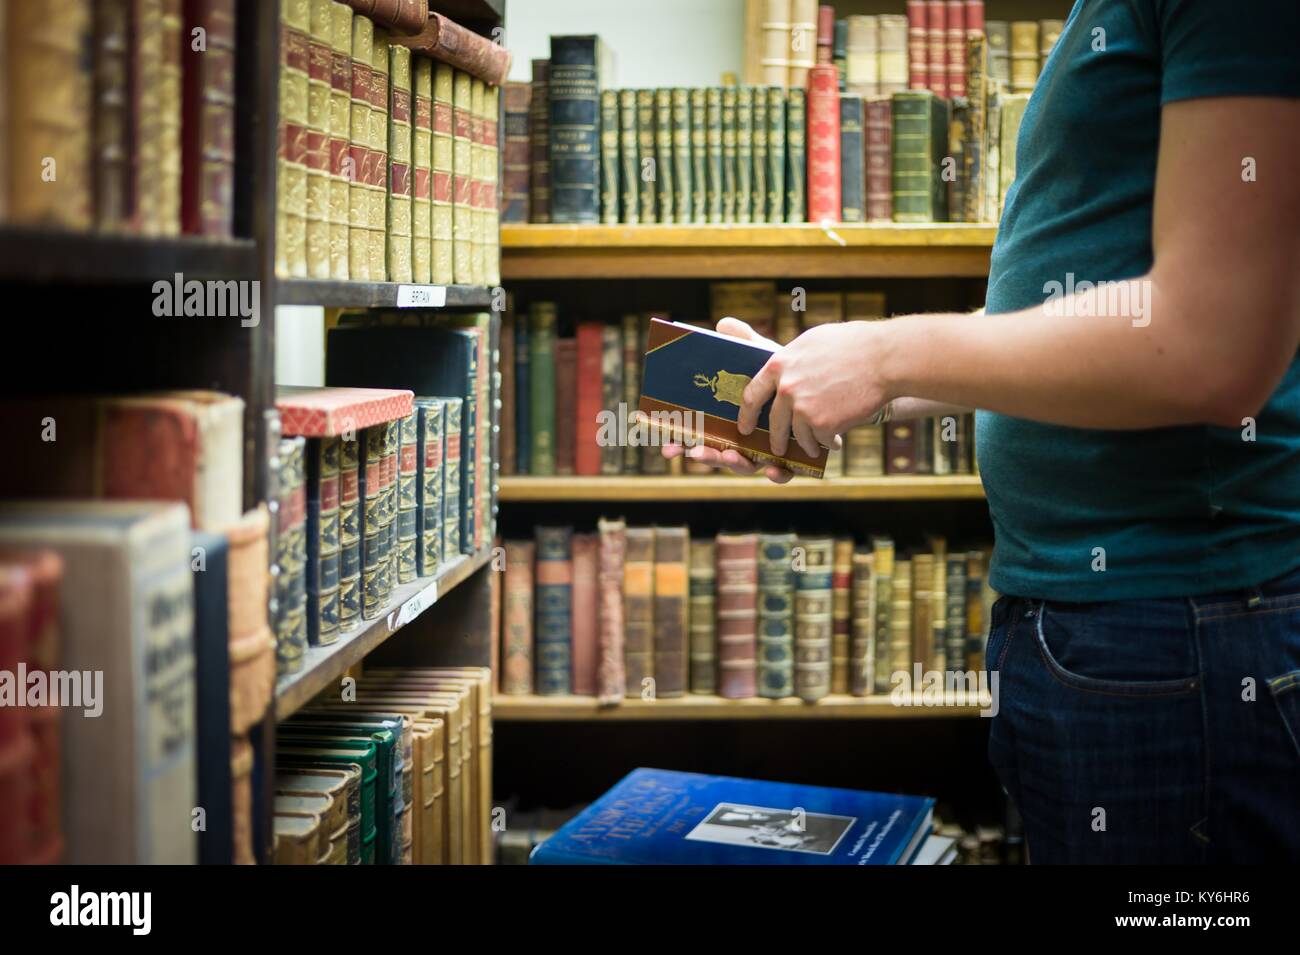 Exploring massive collection of used and second hand rare and collectible books. - Stock Image